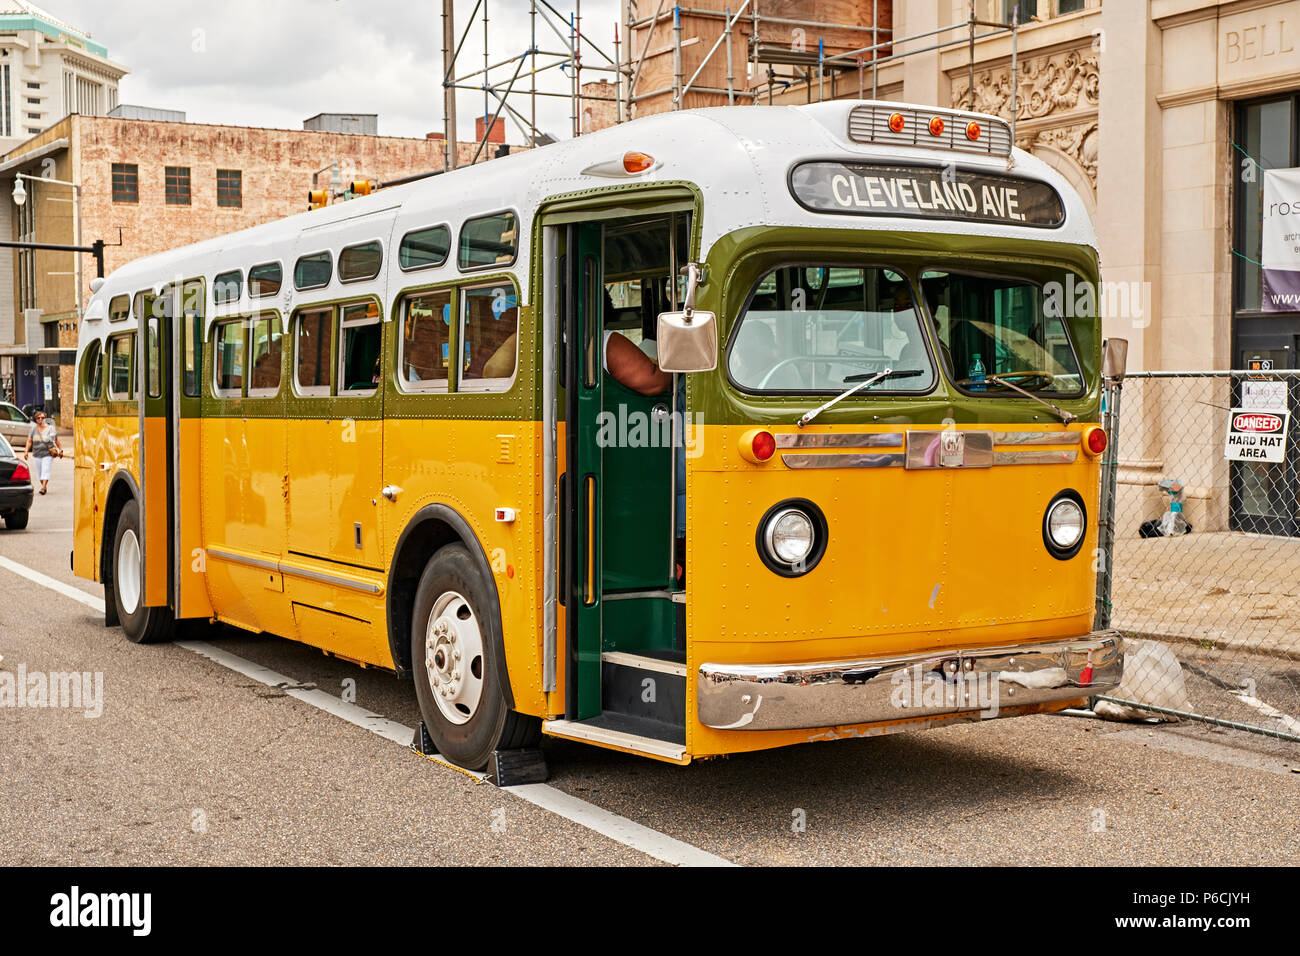 Replica of the Rosa Park's bus she was arrested from during the civil rights struggles in the 1960s in Montgomery Alabama, USA. Stock Photo